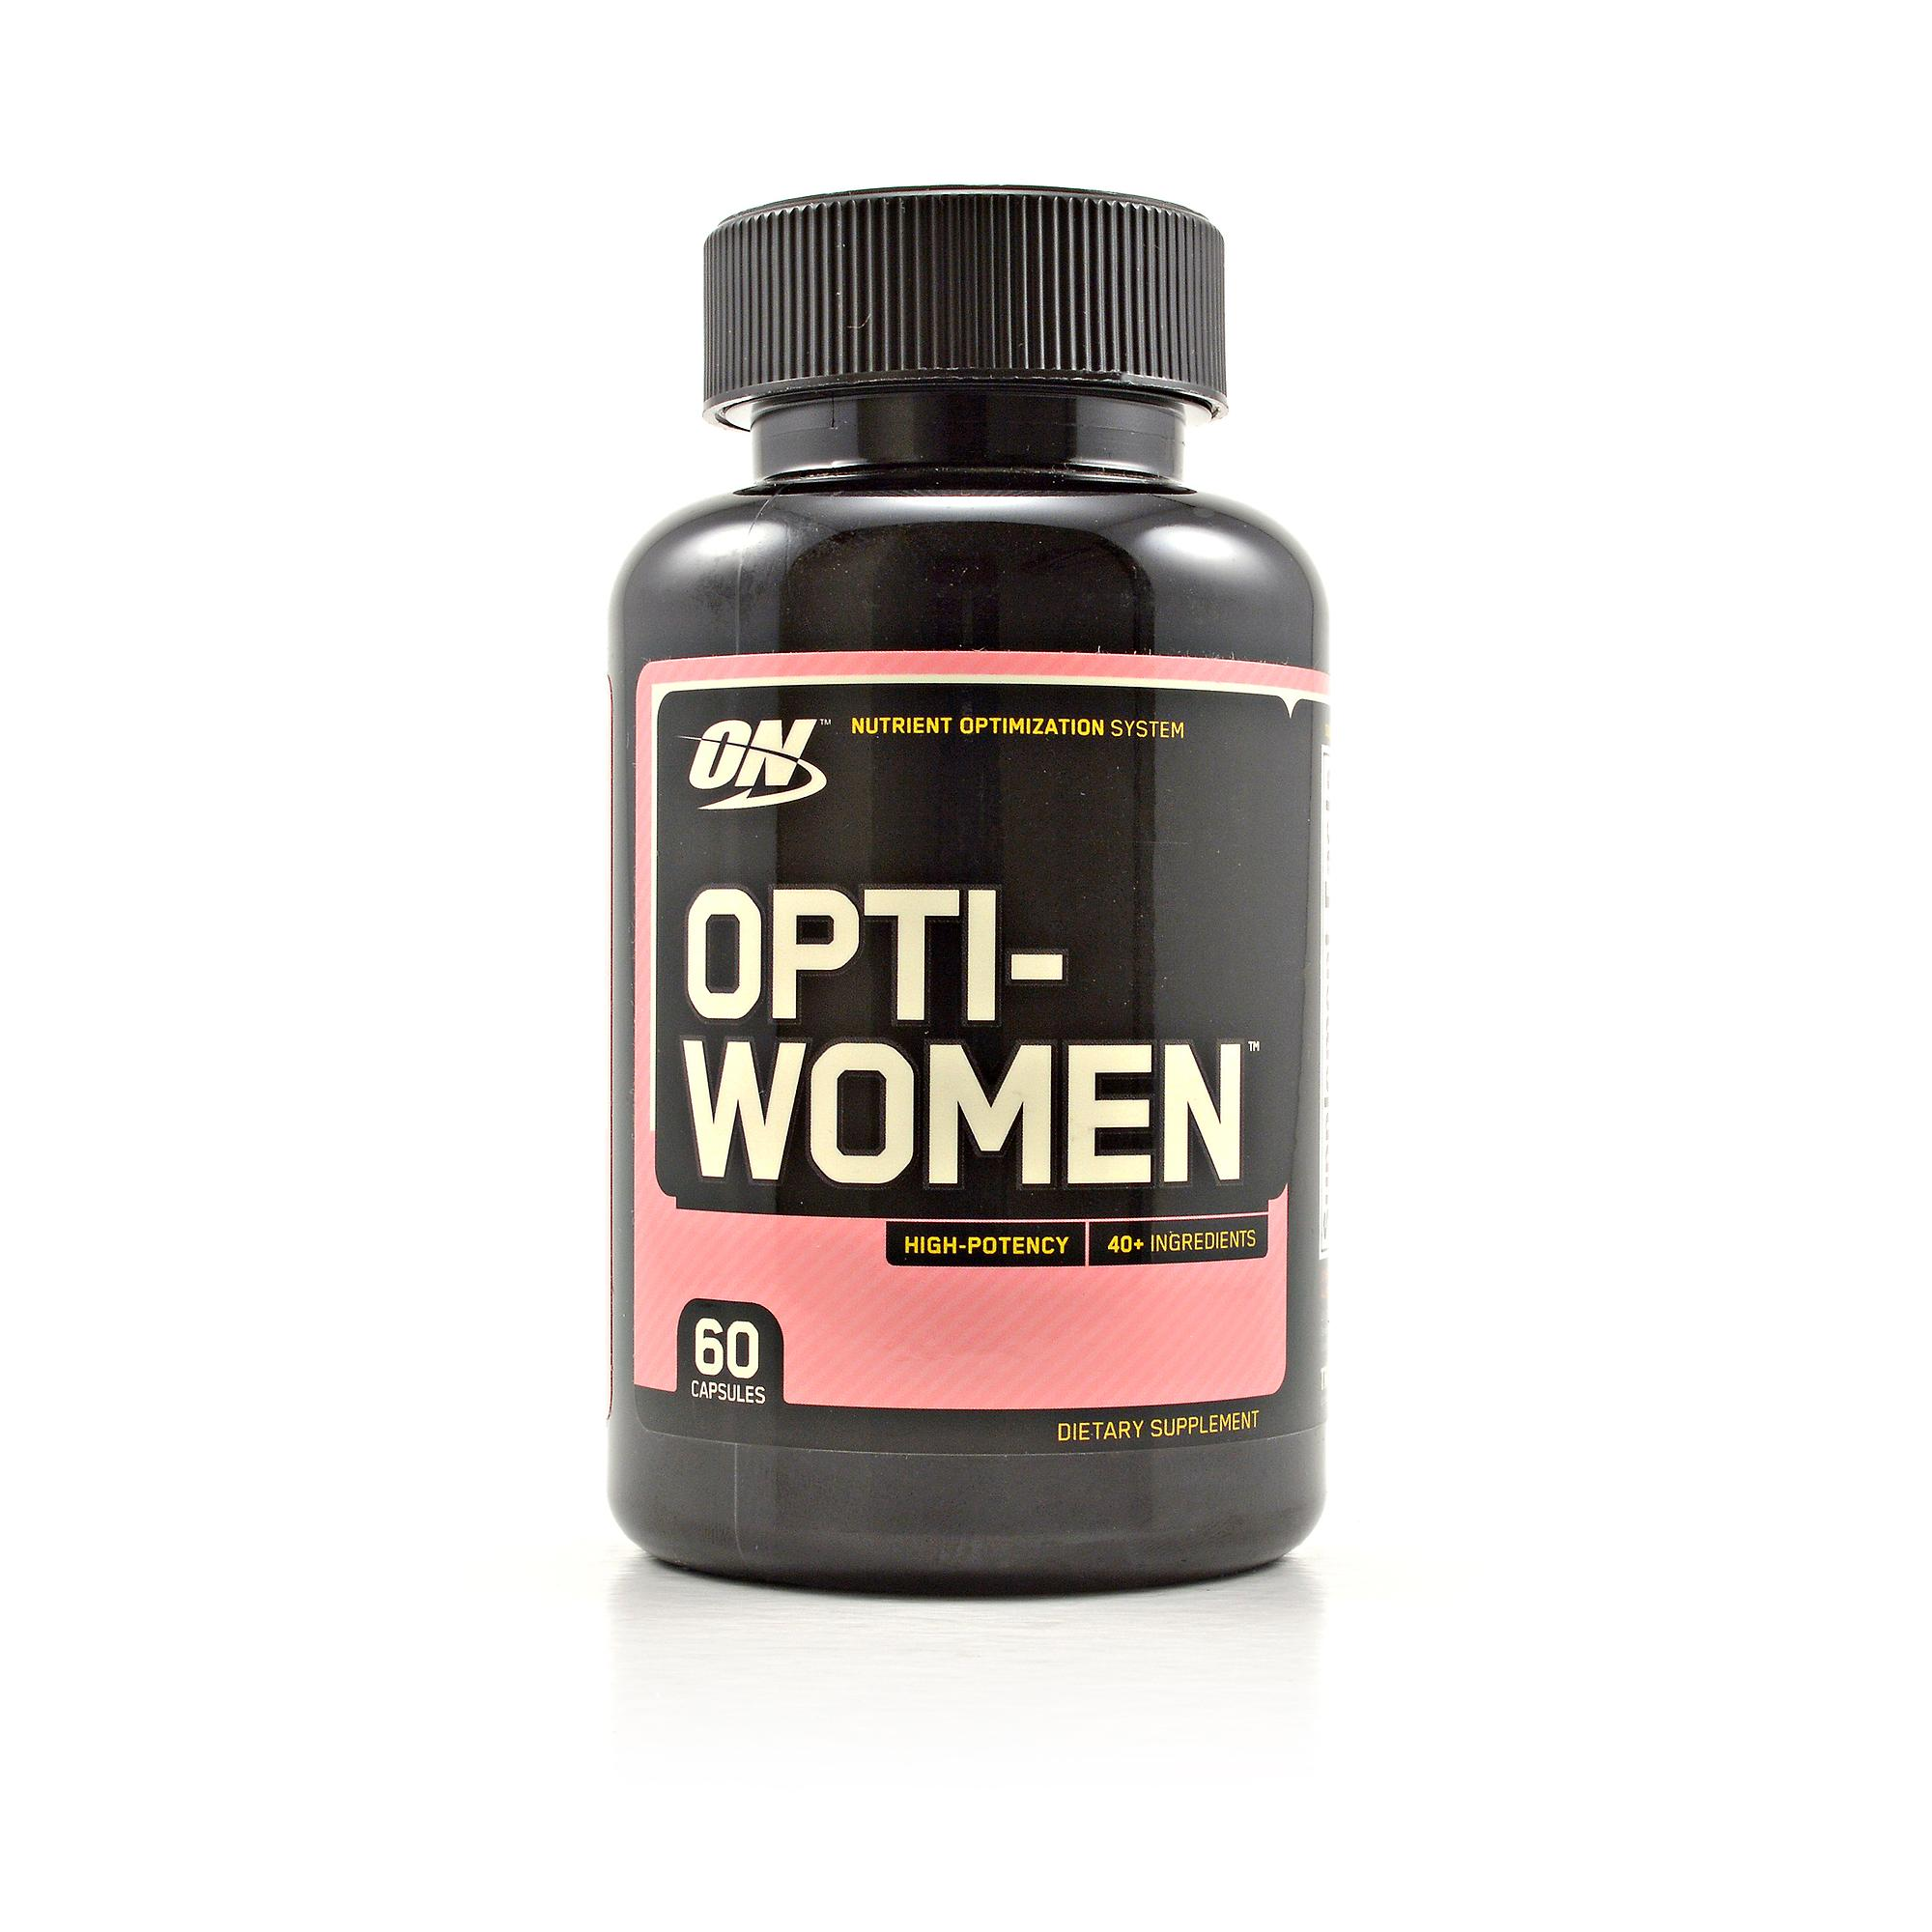 Opti women review